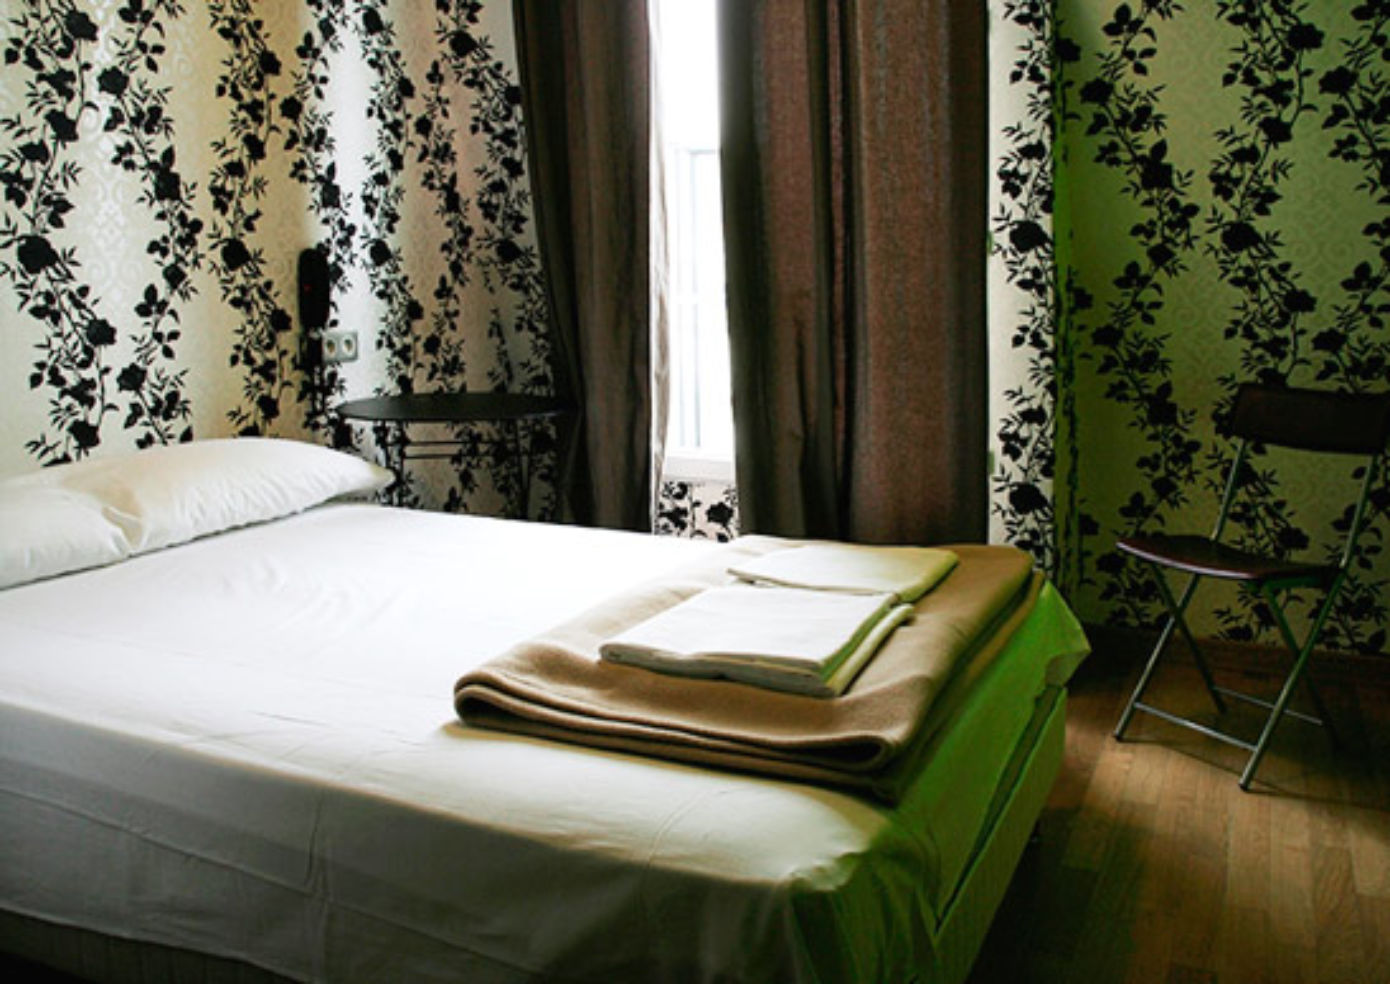 A bedroom at Oops! hostel in Paris